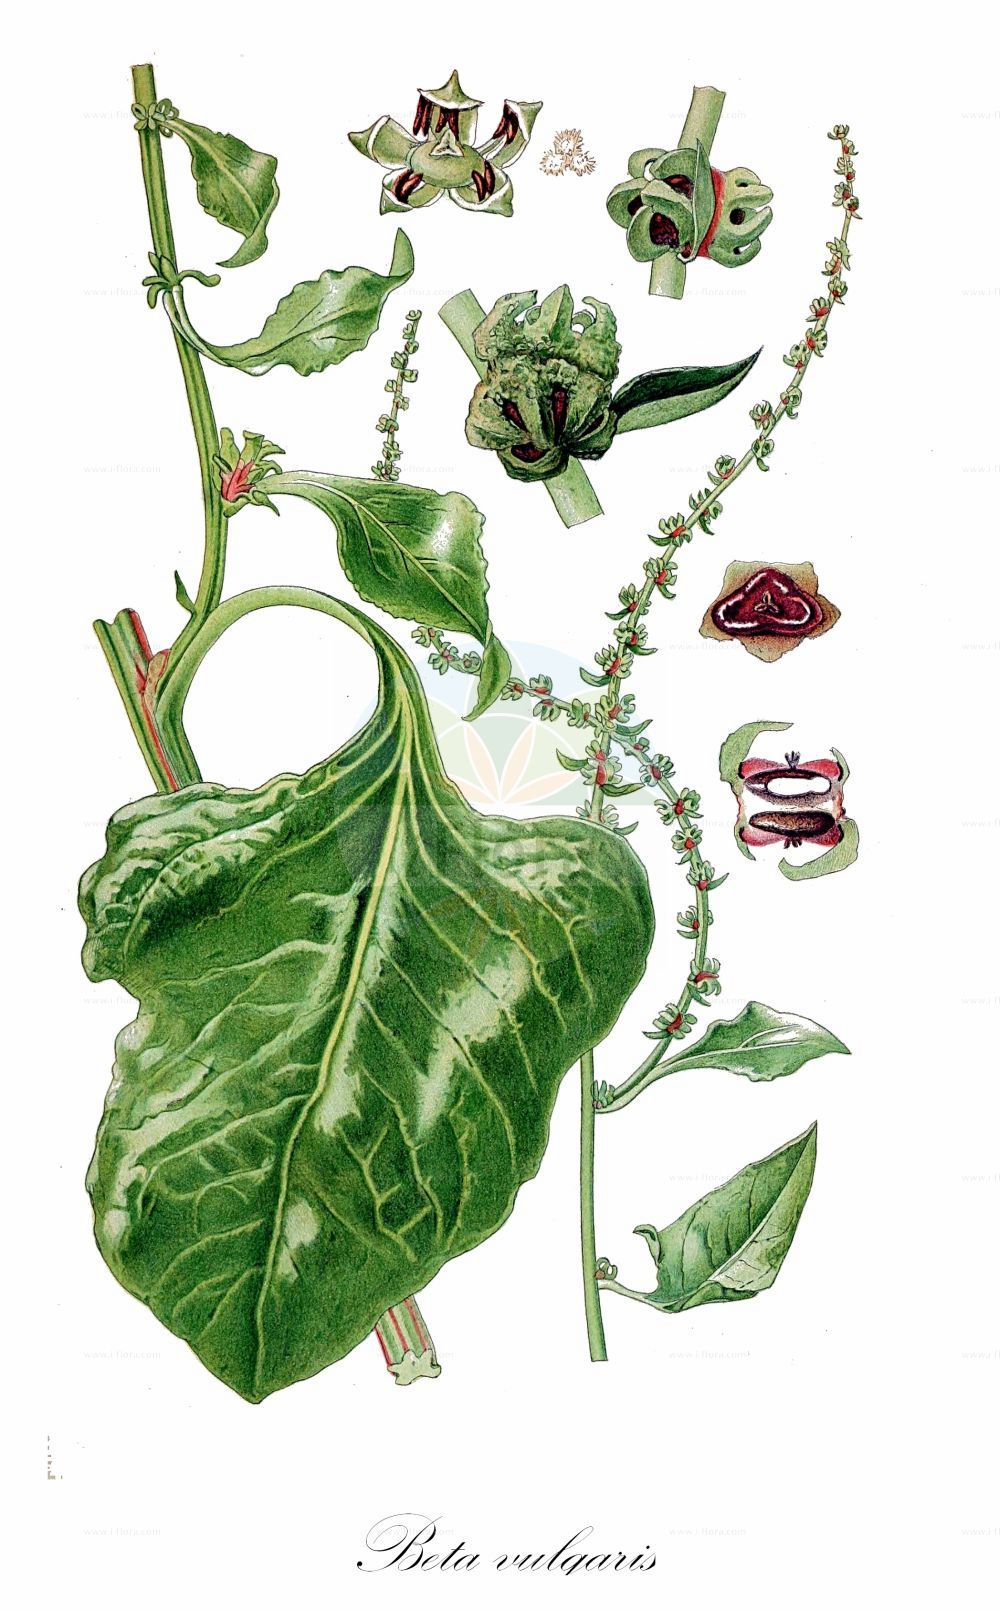 Historische Abbildung von Beta vulgaris (Futter-Ruebe - Beet). Das Bild zeigt Blatt, Bluete, Frucht und Same. ---- Historical Drawing of Beta vulgaris (Futter-Ruebe - Beet).The image is showing leaf, flower, fruit and seed.(Beta vulgaris,Futter-Ruebe,Beet,Beta cicla,Beta crispa,Beta esculenta,Beta sulcata,subsp. esculenta,Beta-Ruebe,Gewoehnliche Ruebe,Mangold,Runkelruebe,Common  & Sea ,Beta,Ruebe,Beet,Amaranthaceae,Fuchsschwanzgewaechse,Pigweed family,Blatt,Bluete,Frucht,Same,leaf,flower,fruit,seed,Lindman (1901-1905))